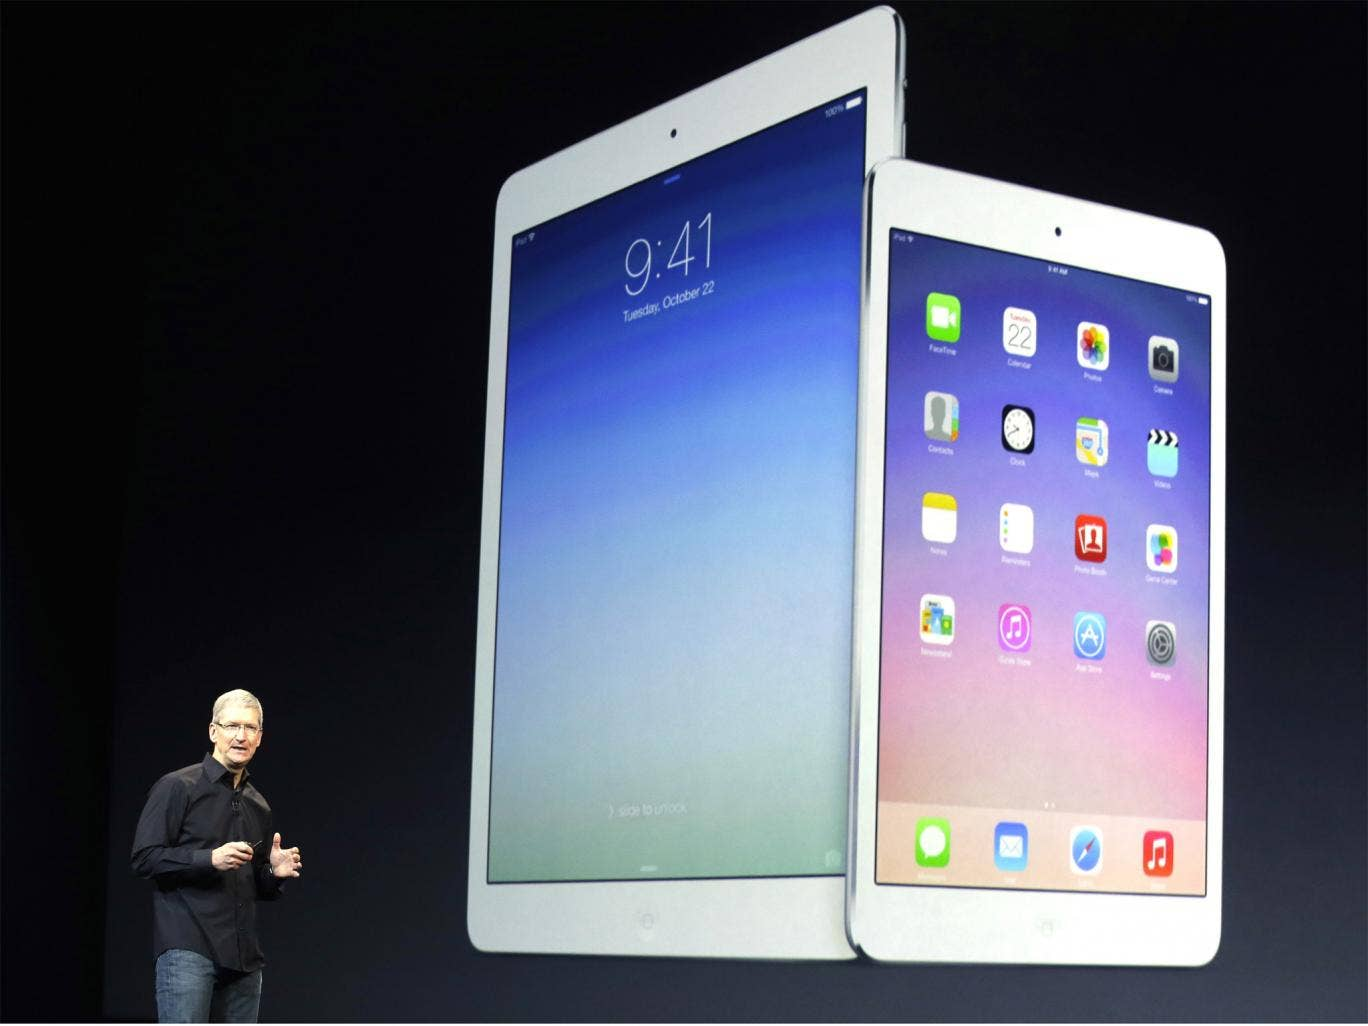 Apple CEO Tim Cook introduces the new iPad Air